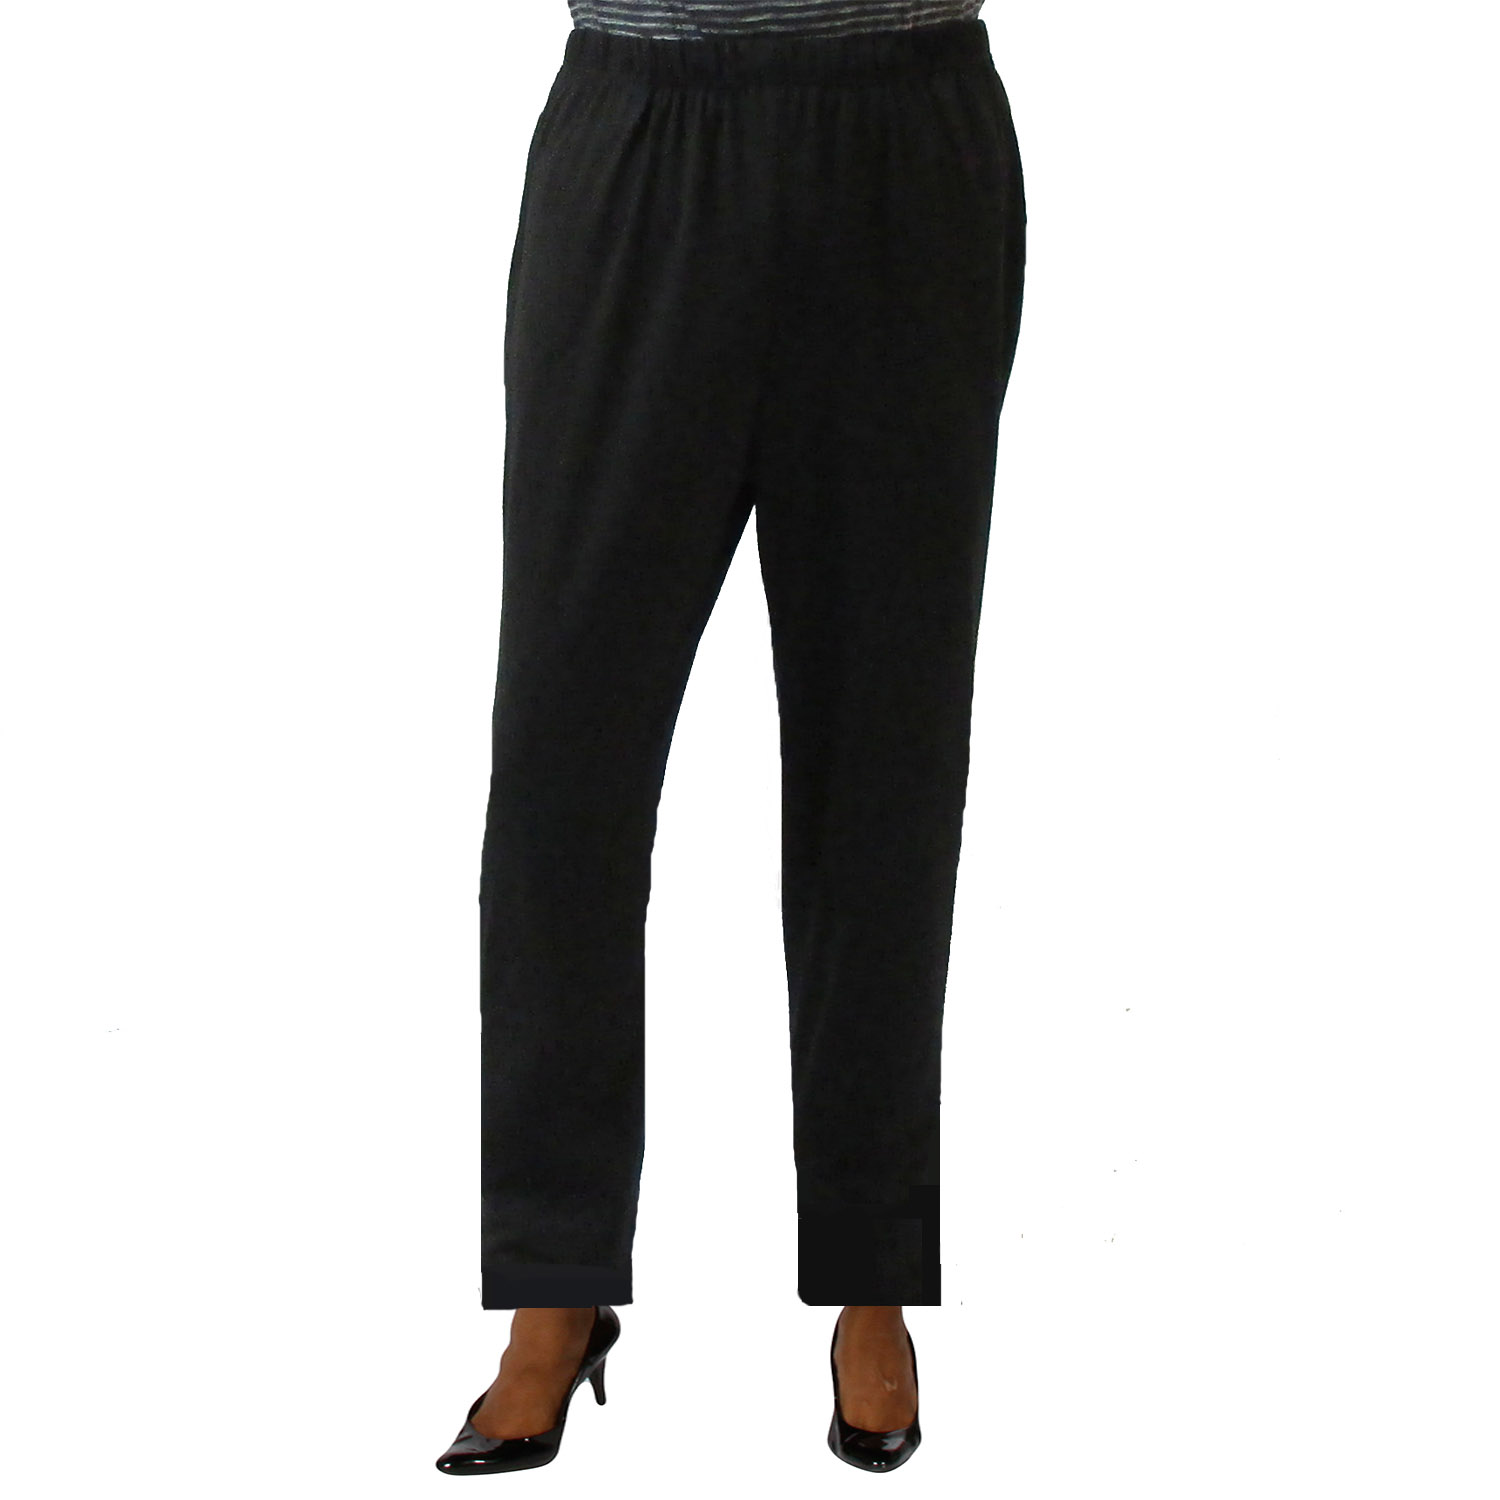 A Personal Touch Black Knit Pull-On Pant Plus Size Pull-On Pant